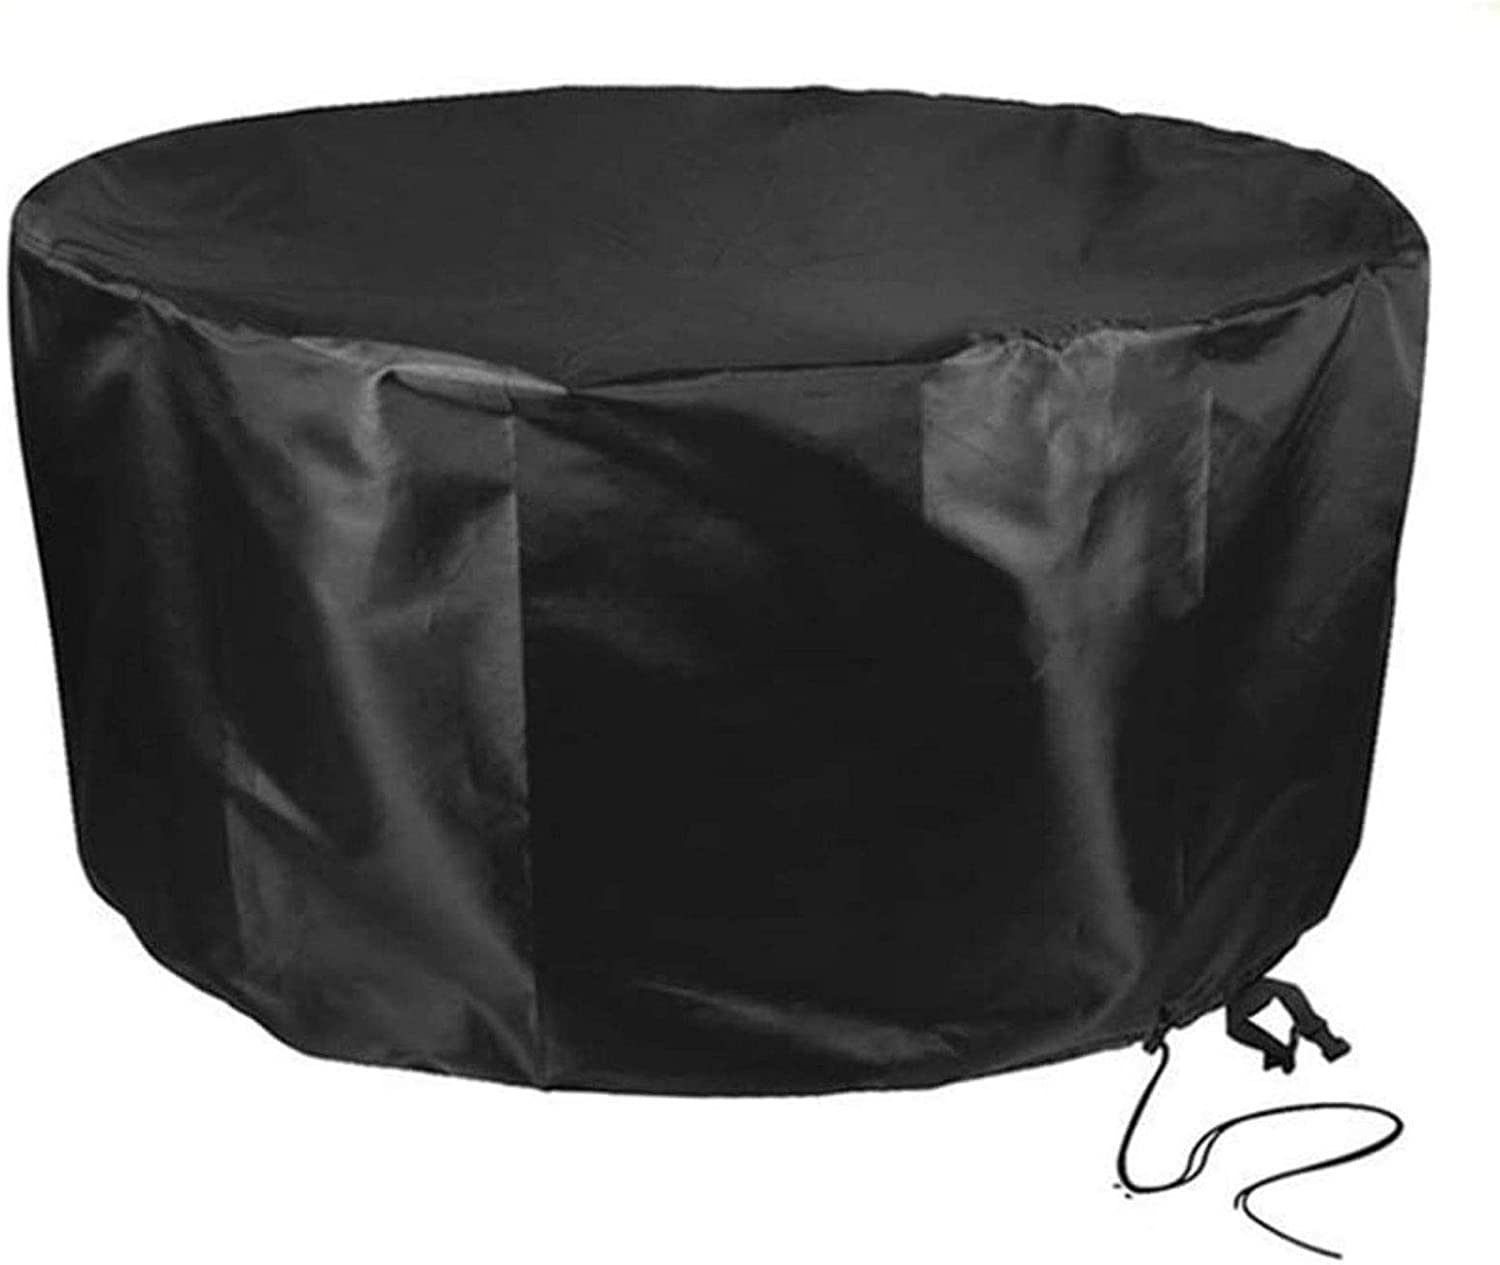 WFSH Outdoor Furniture Cover 12871cm Garden Minneapolis Mall Covers Wat Beauty products